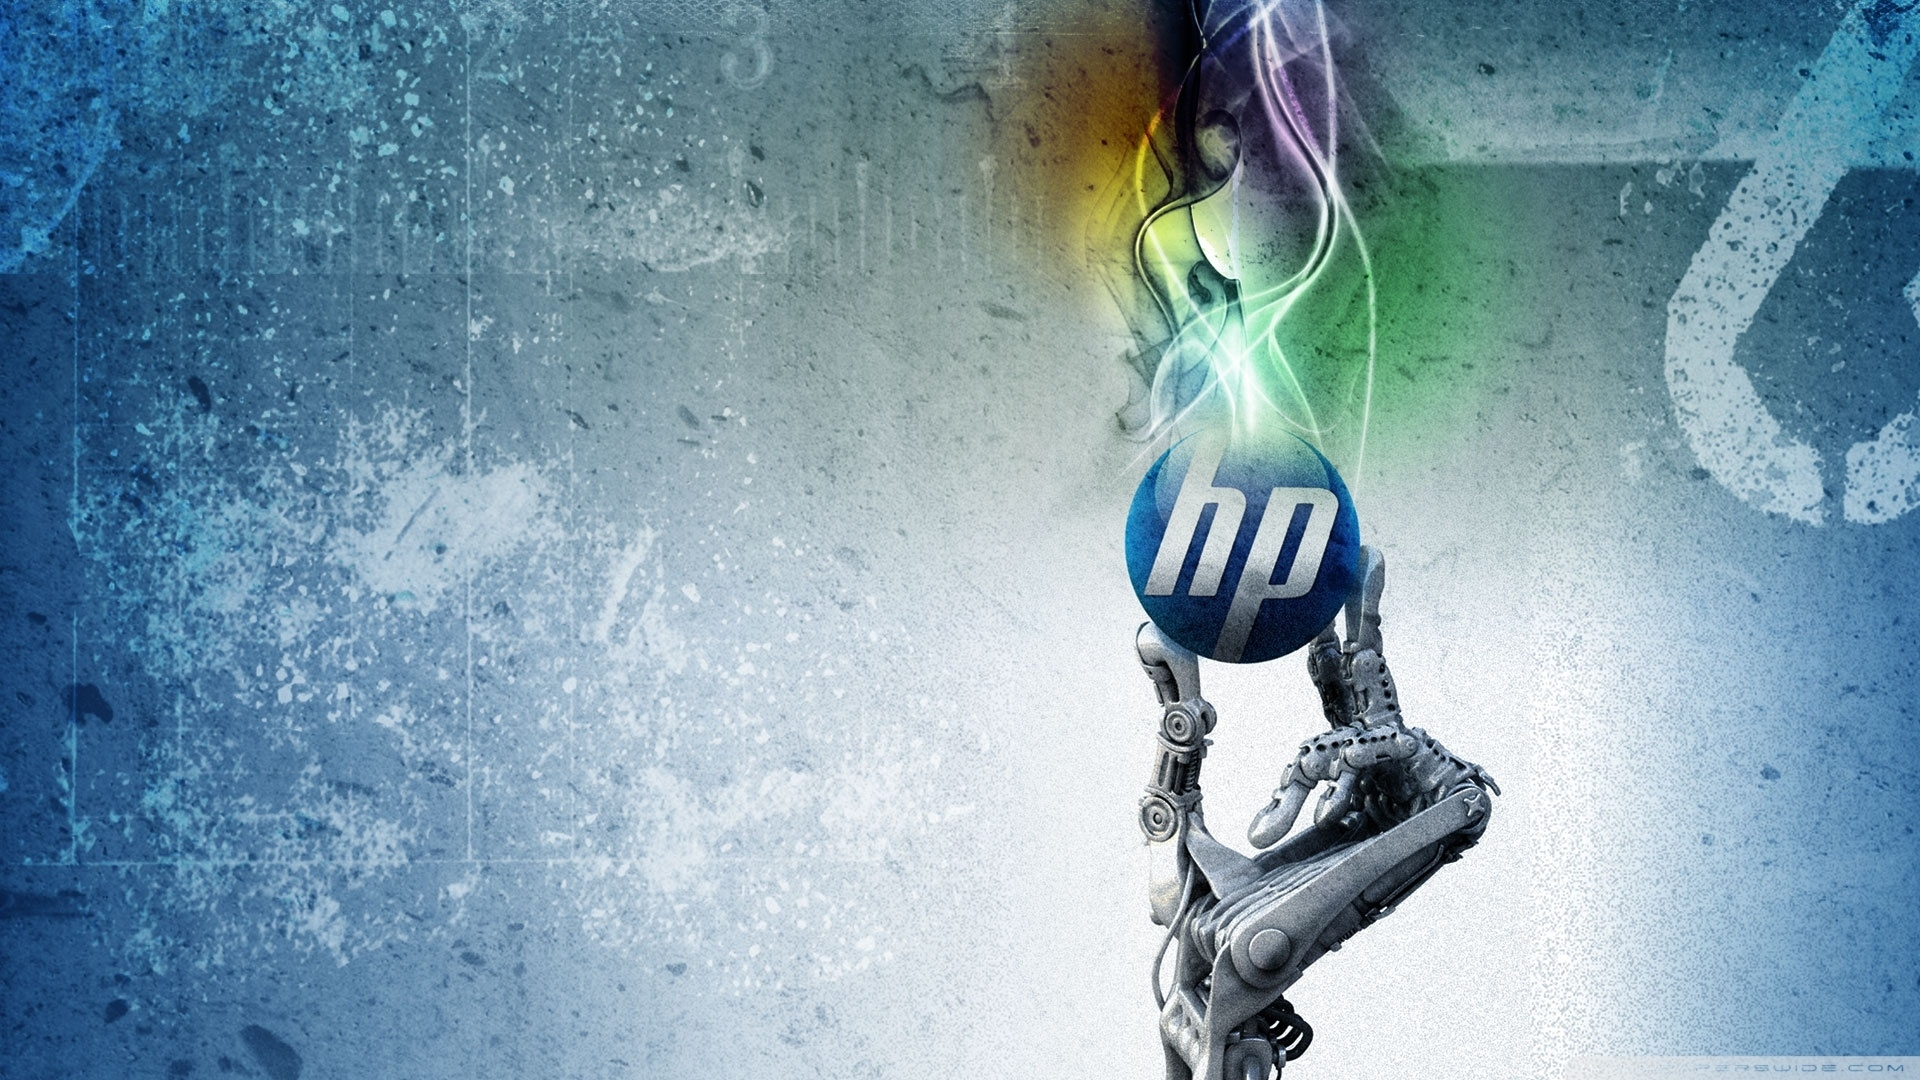 hp ❤ 4k hd desktop wallpaper for 4k ultra hd tv • wide & ultra